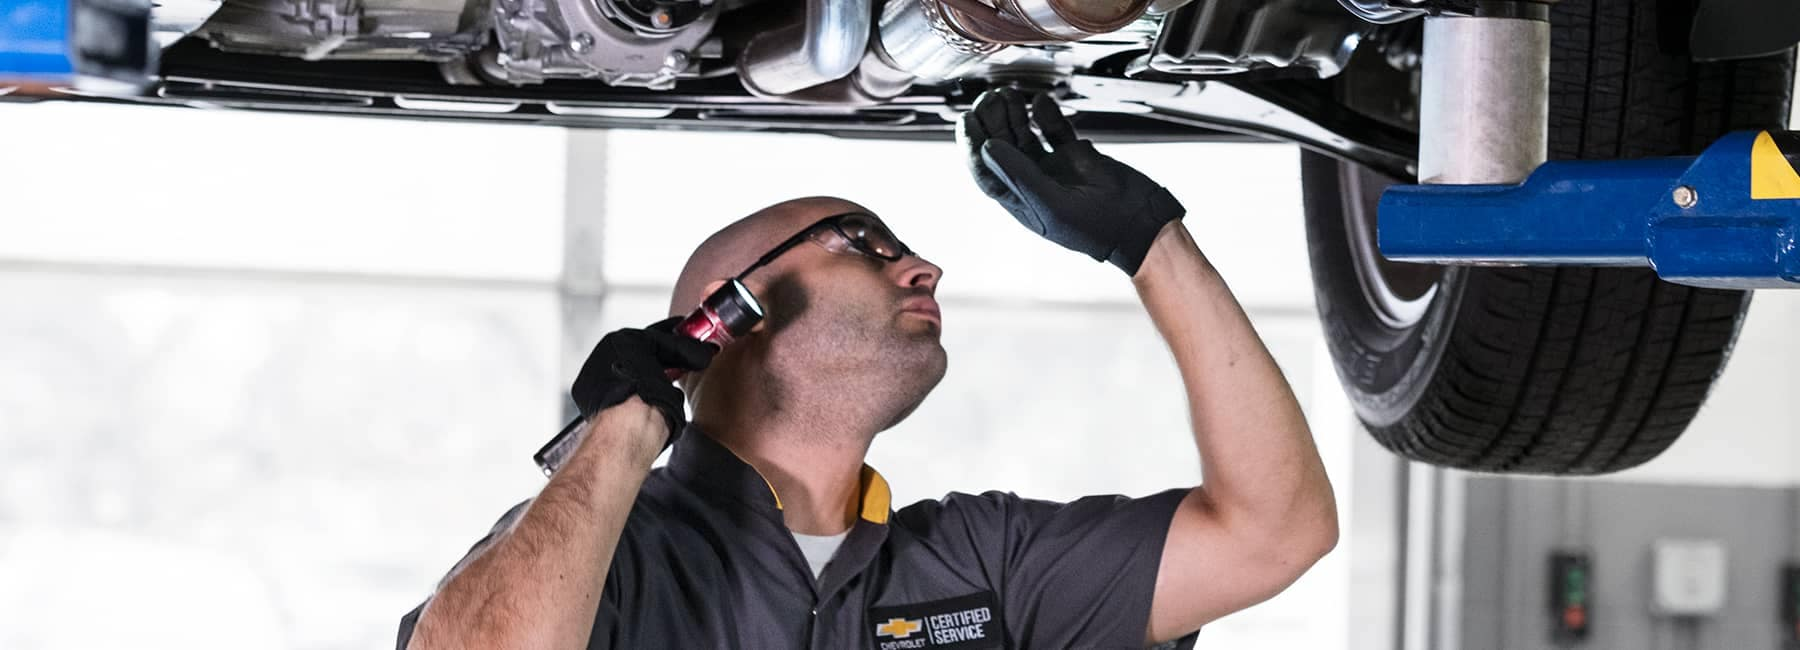 Chevrolet service technician looking at underside of a raised car